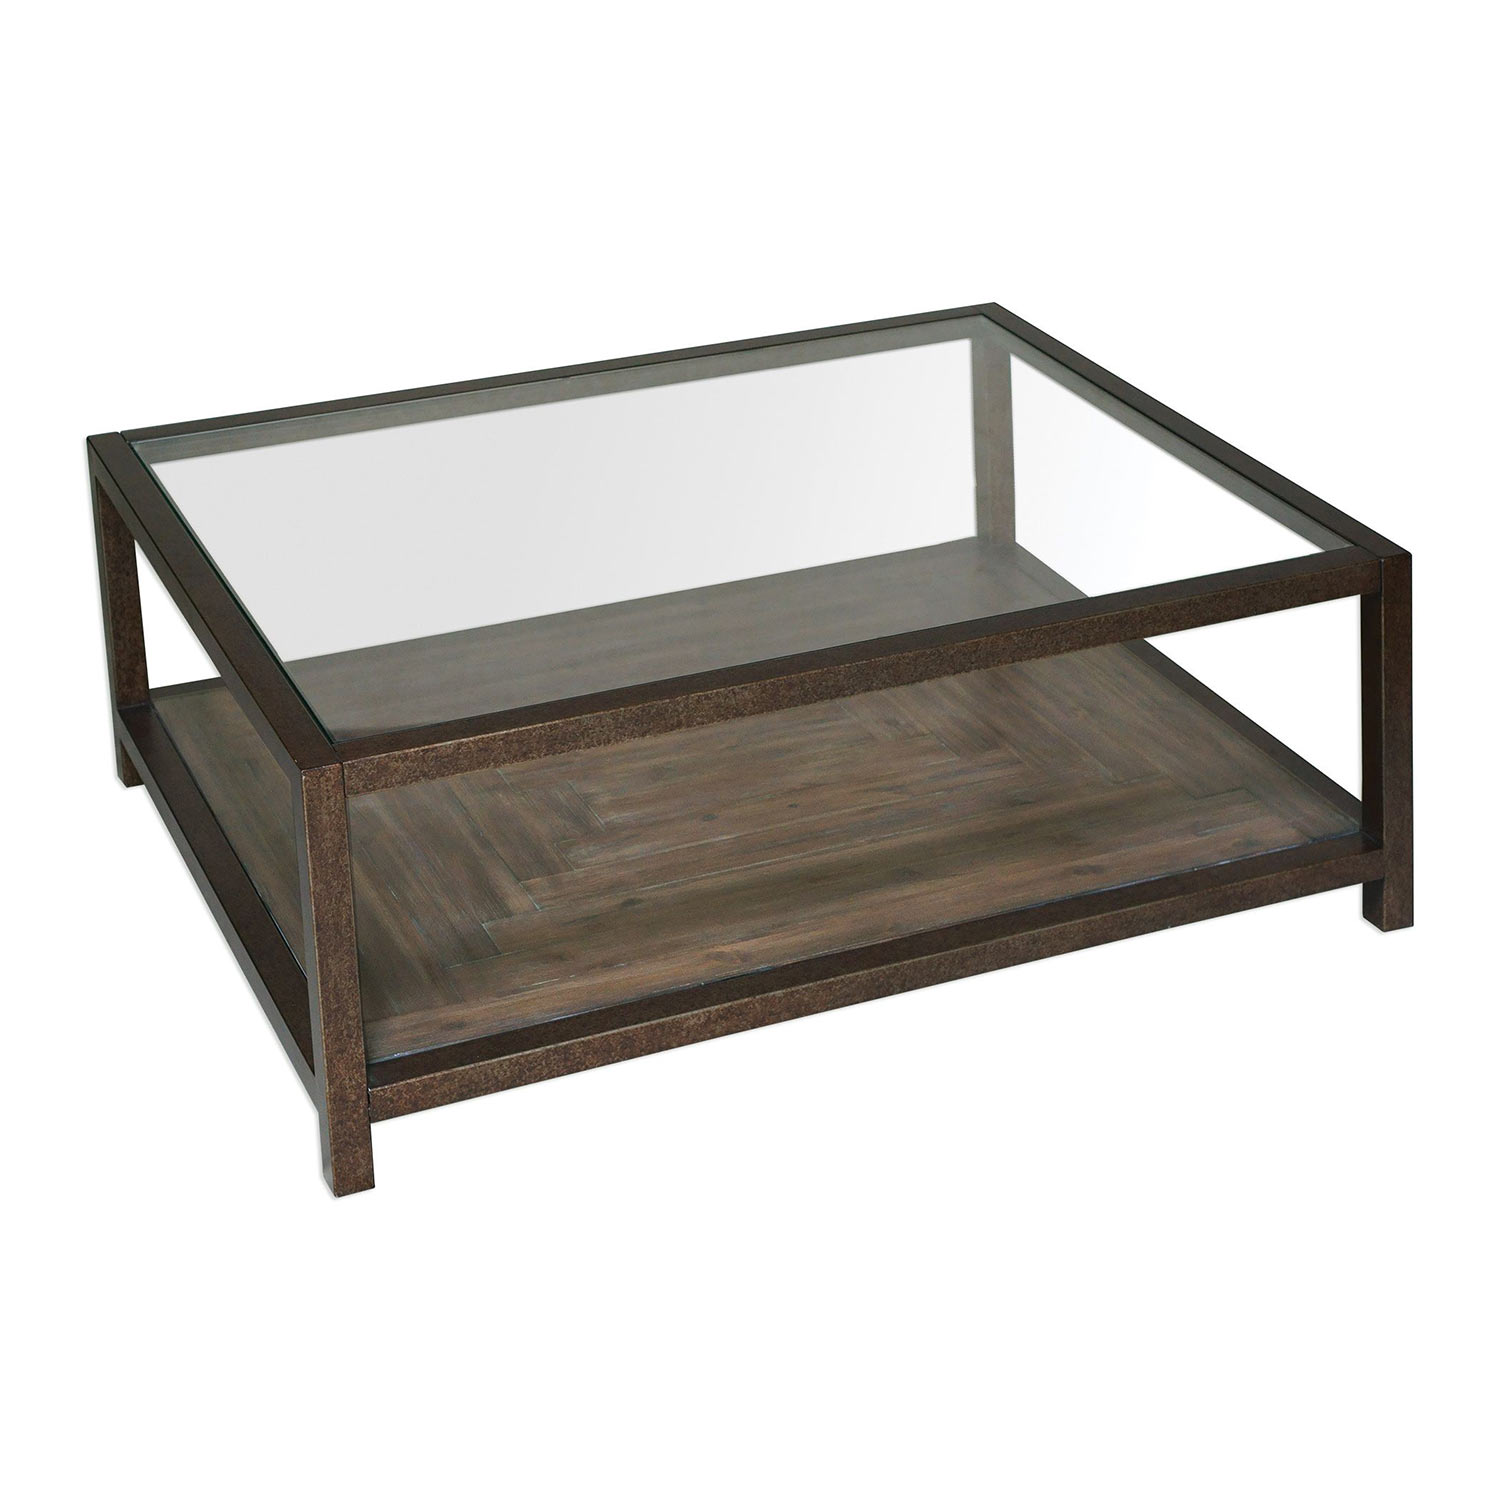 Uttermost carter coffee table bronze uttermost 25971 at Bronze coffee tables